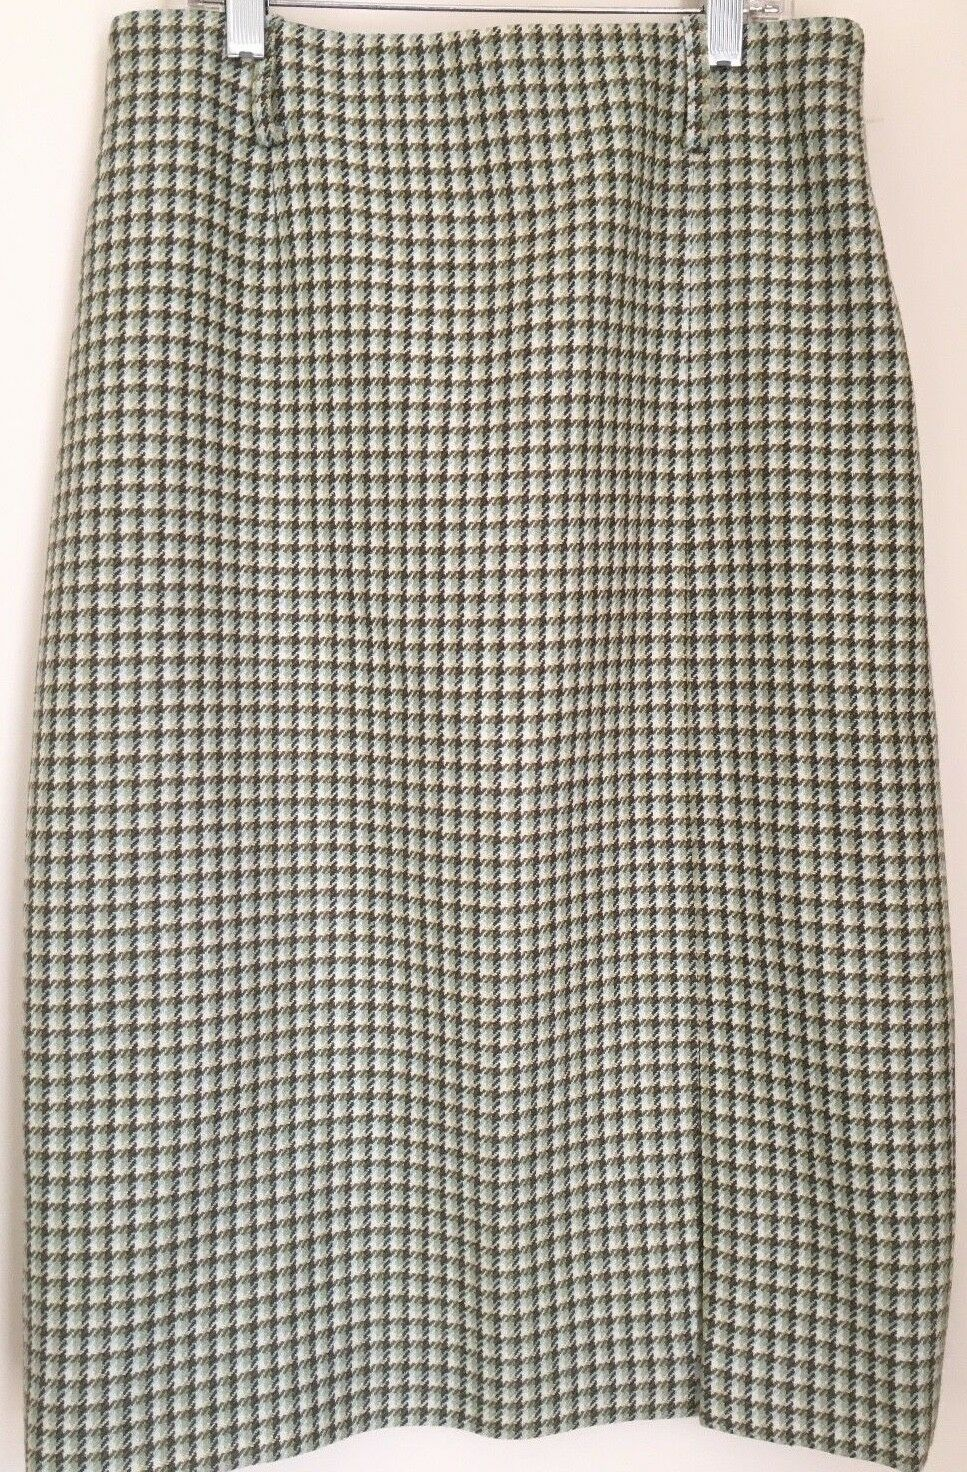 Women's Skirt TALBOTS Pencil GREEN AQUA HOUNDSTOOTH  Wool Straight 4